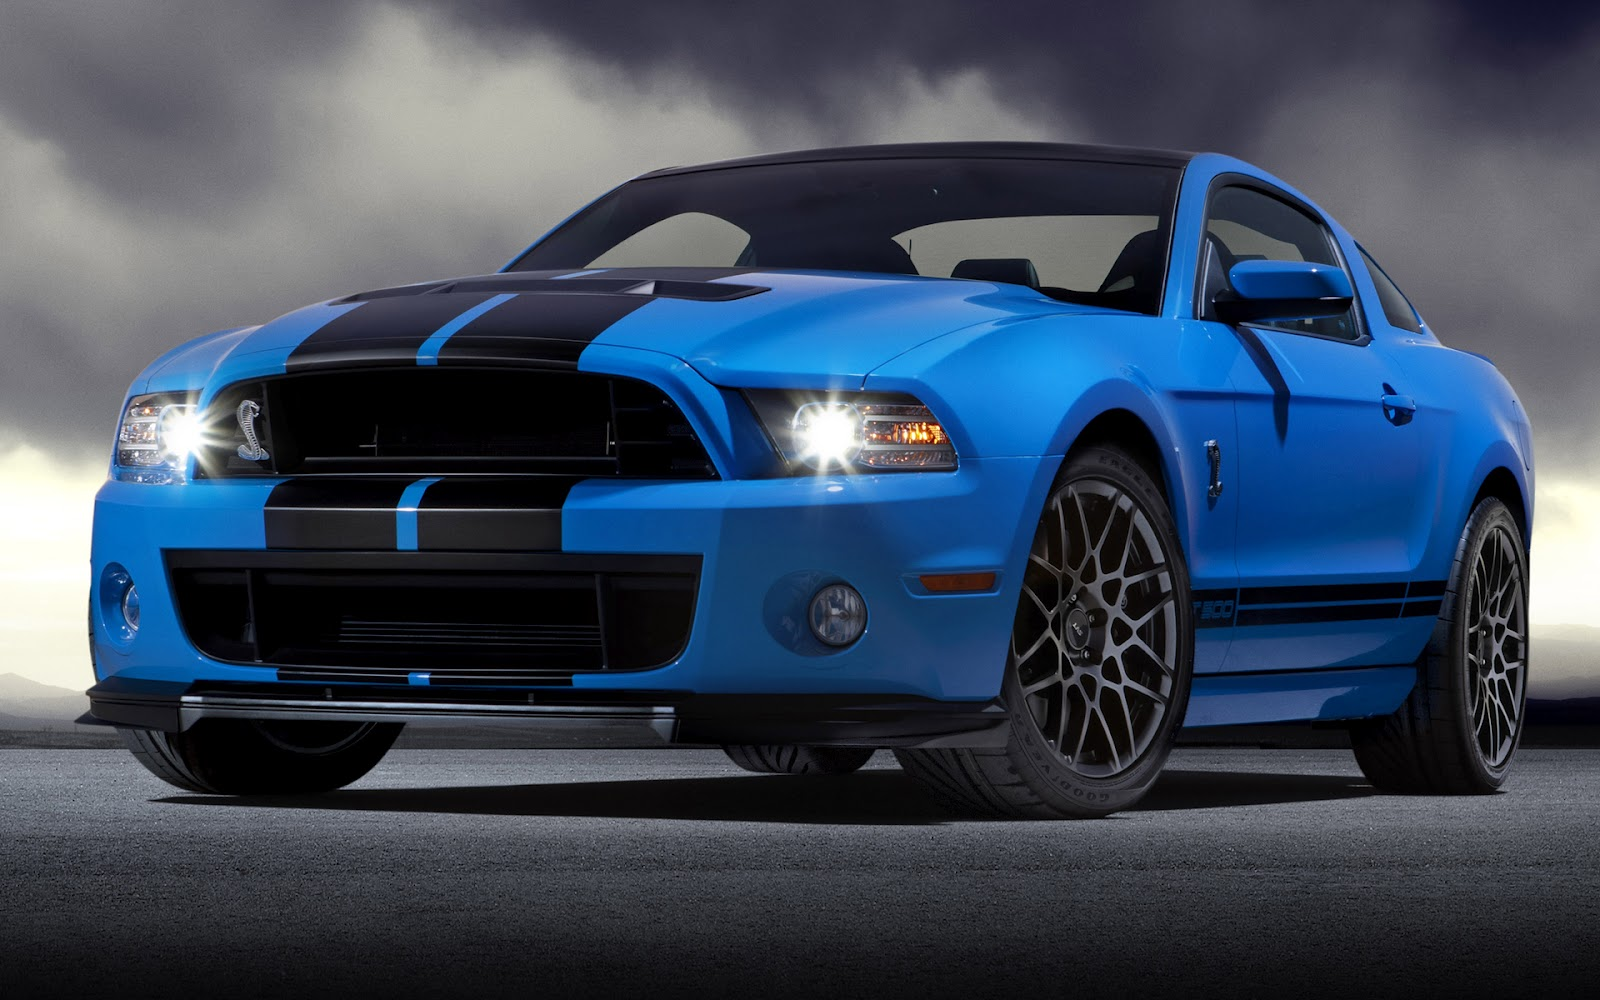 Ford Mustang Shelby GT500 Desktop Computers Free Wallpaper